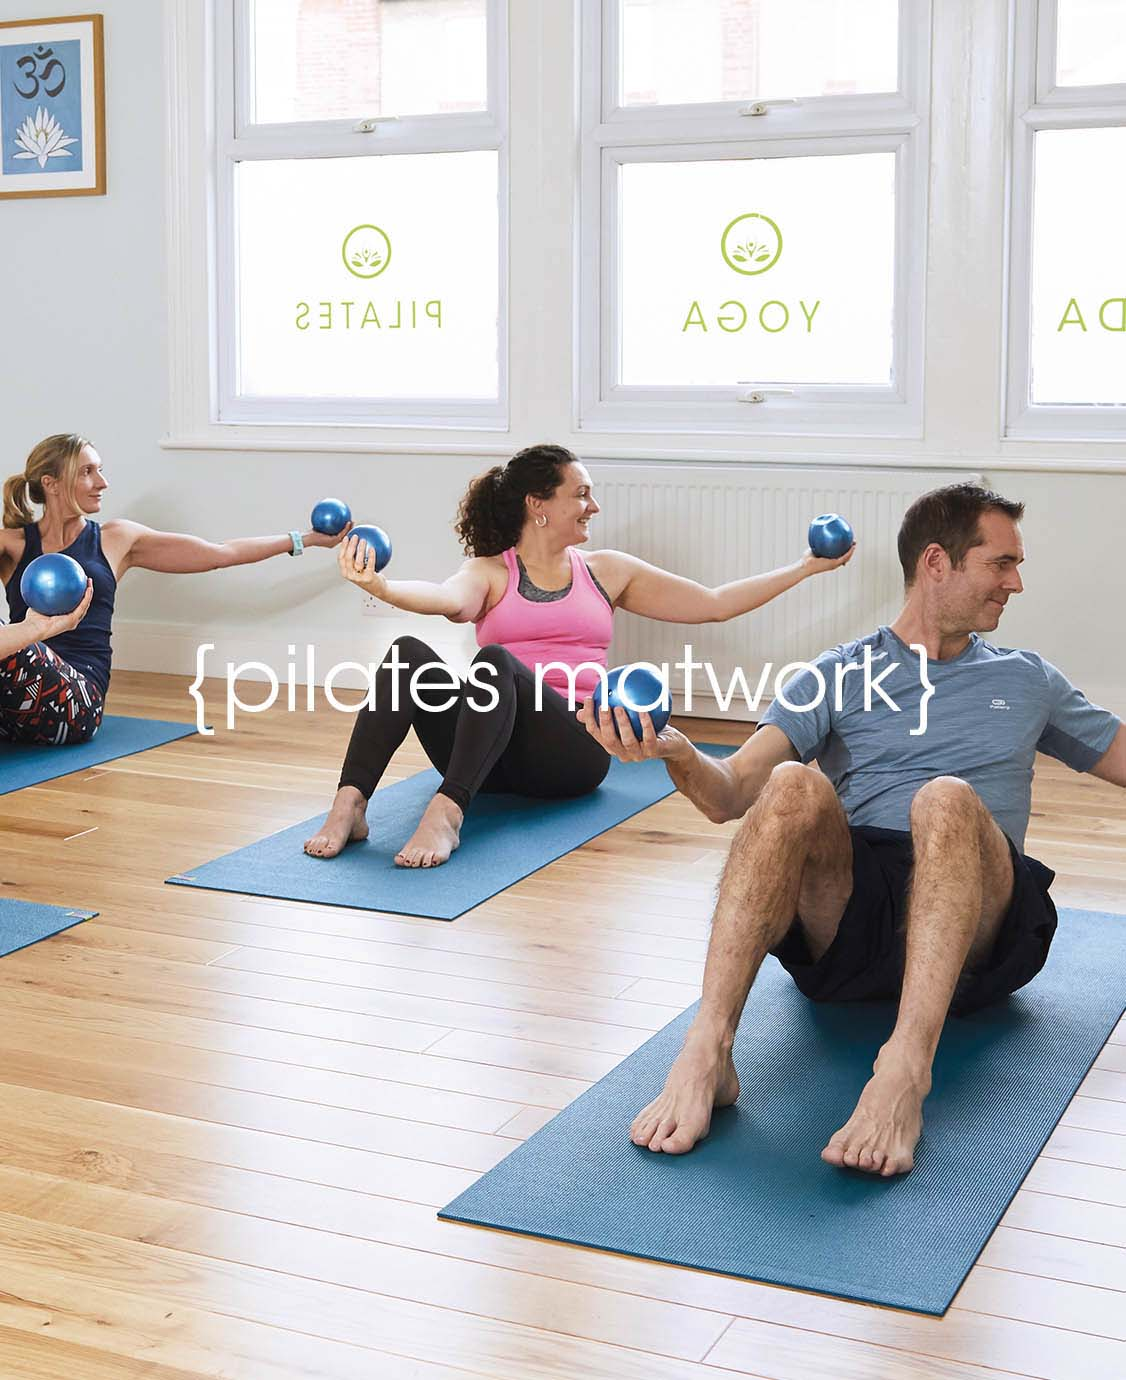 Pilates Matwork at Lotus health and fitness